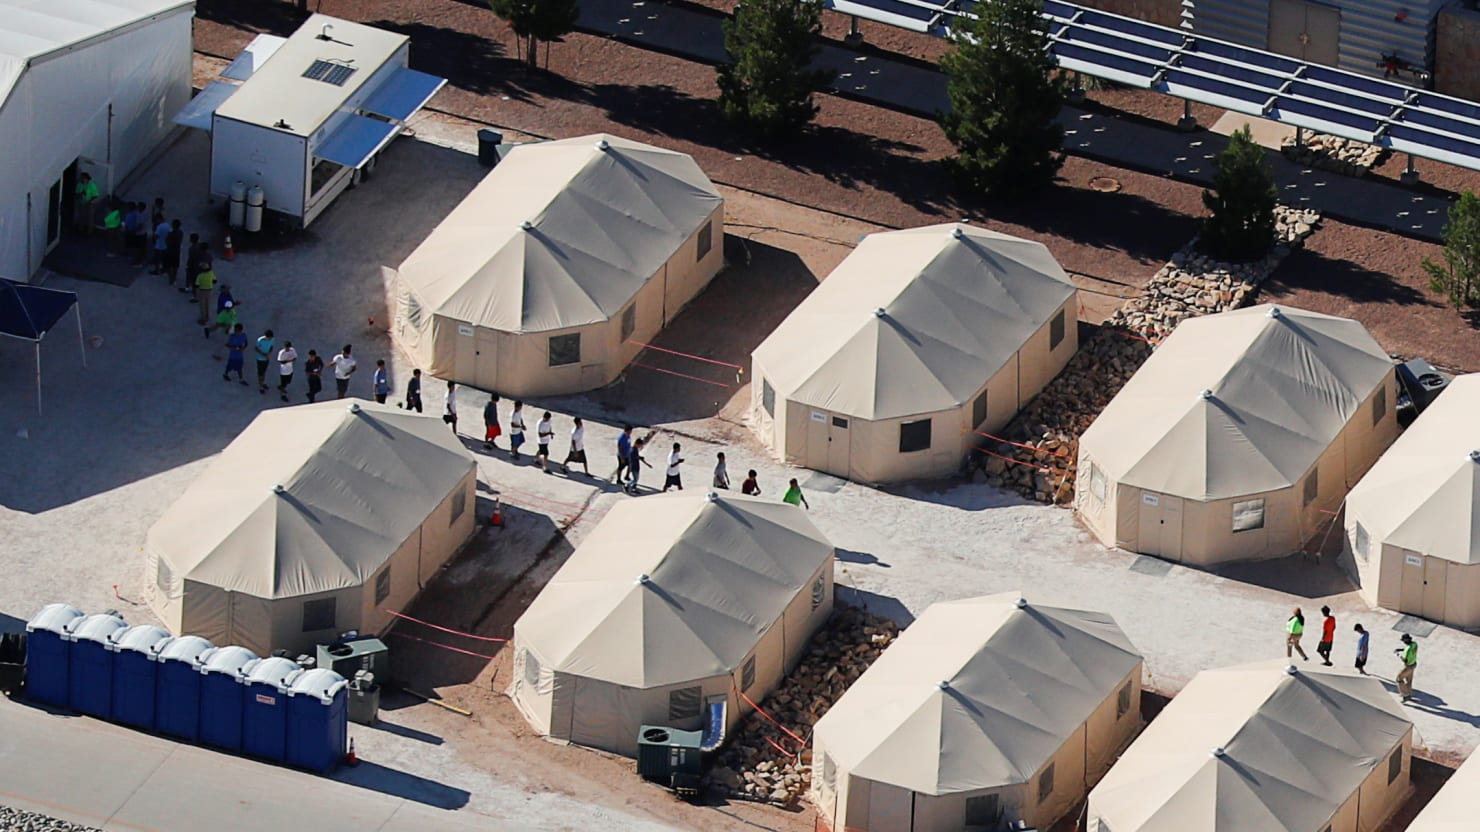 Nonprofit Execs Rake in Cash From Child Detention Center Funding